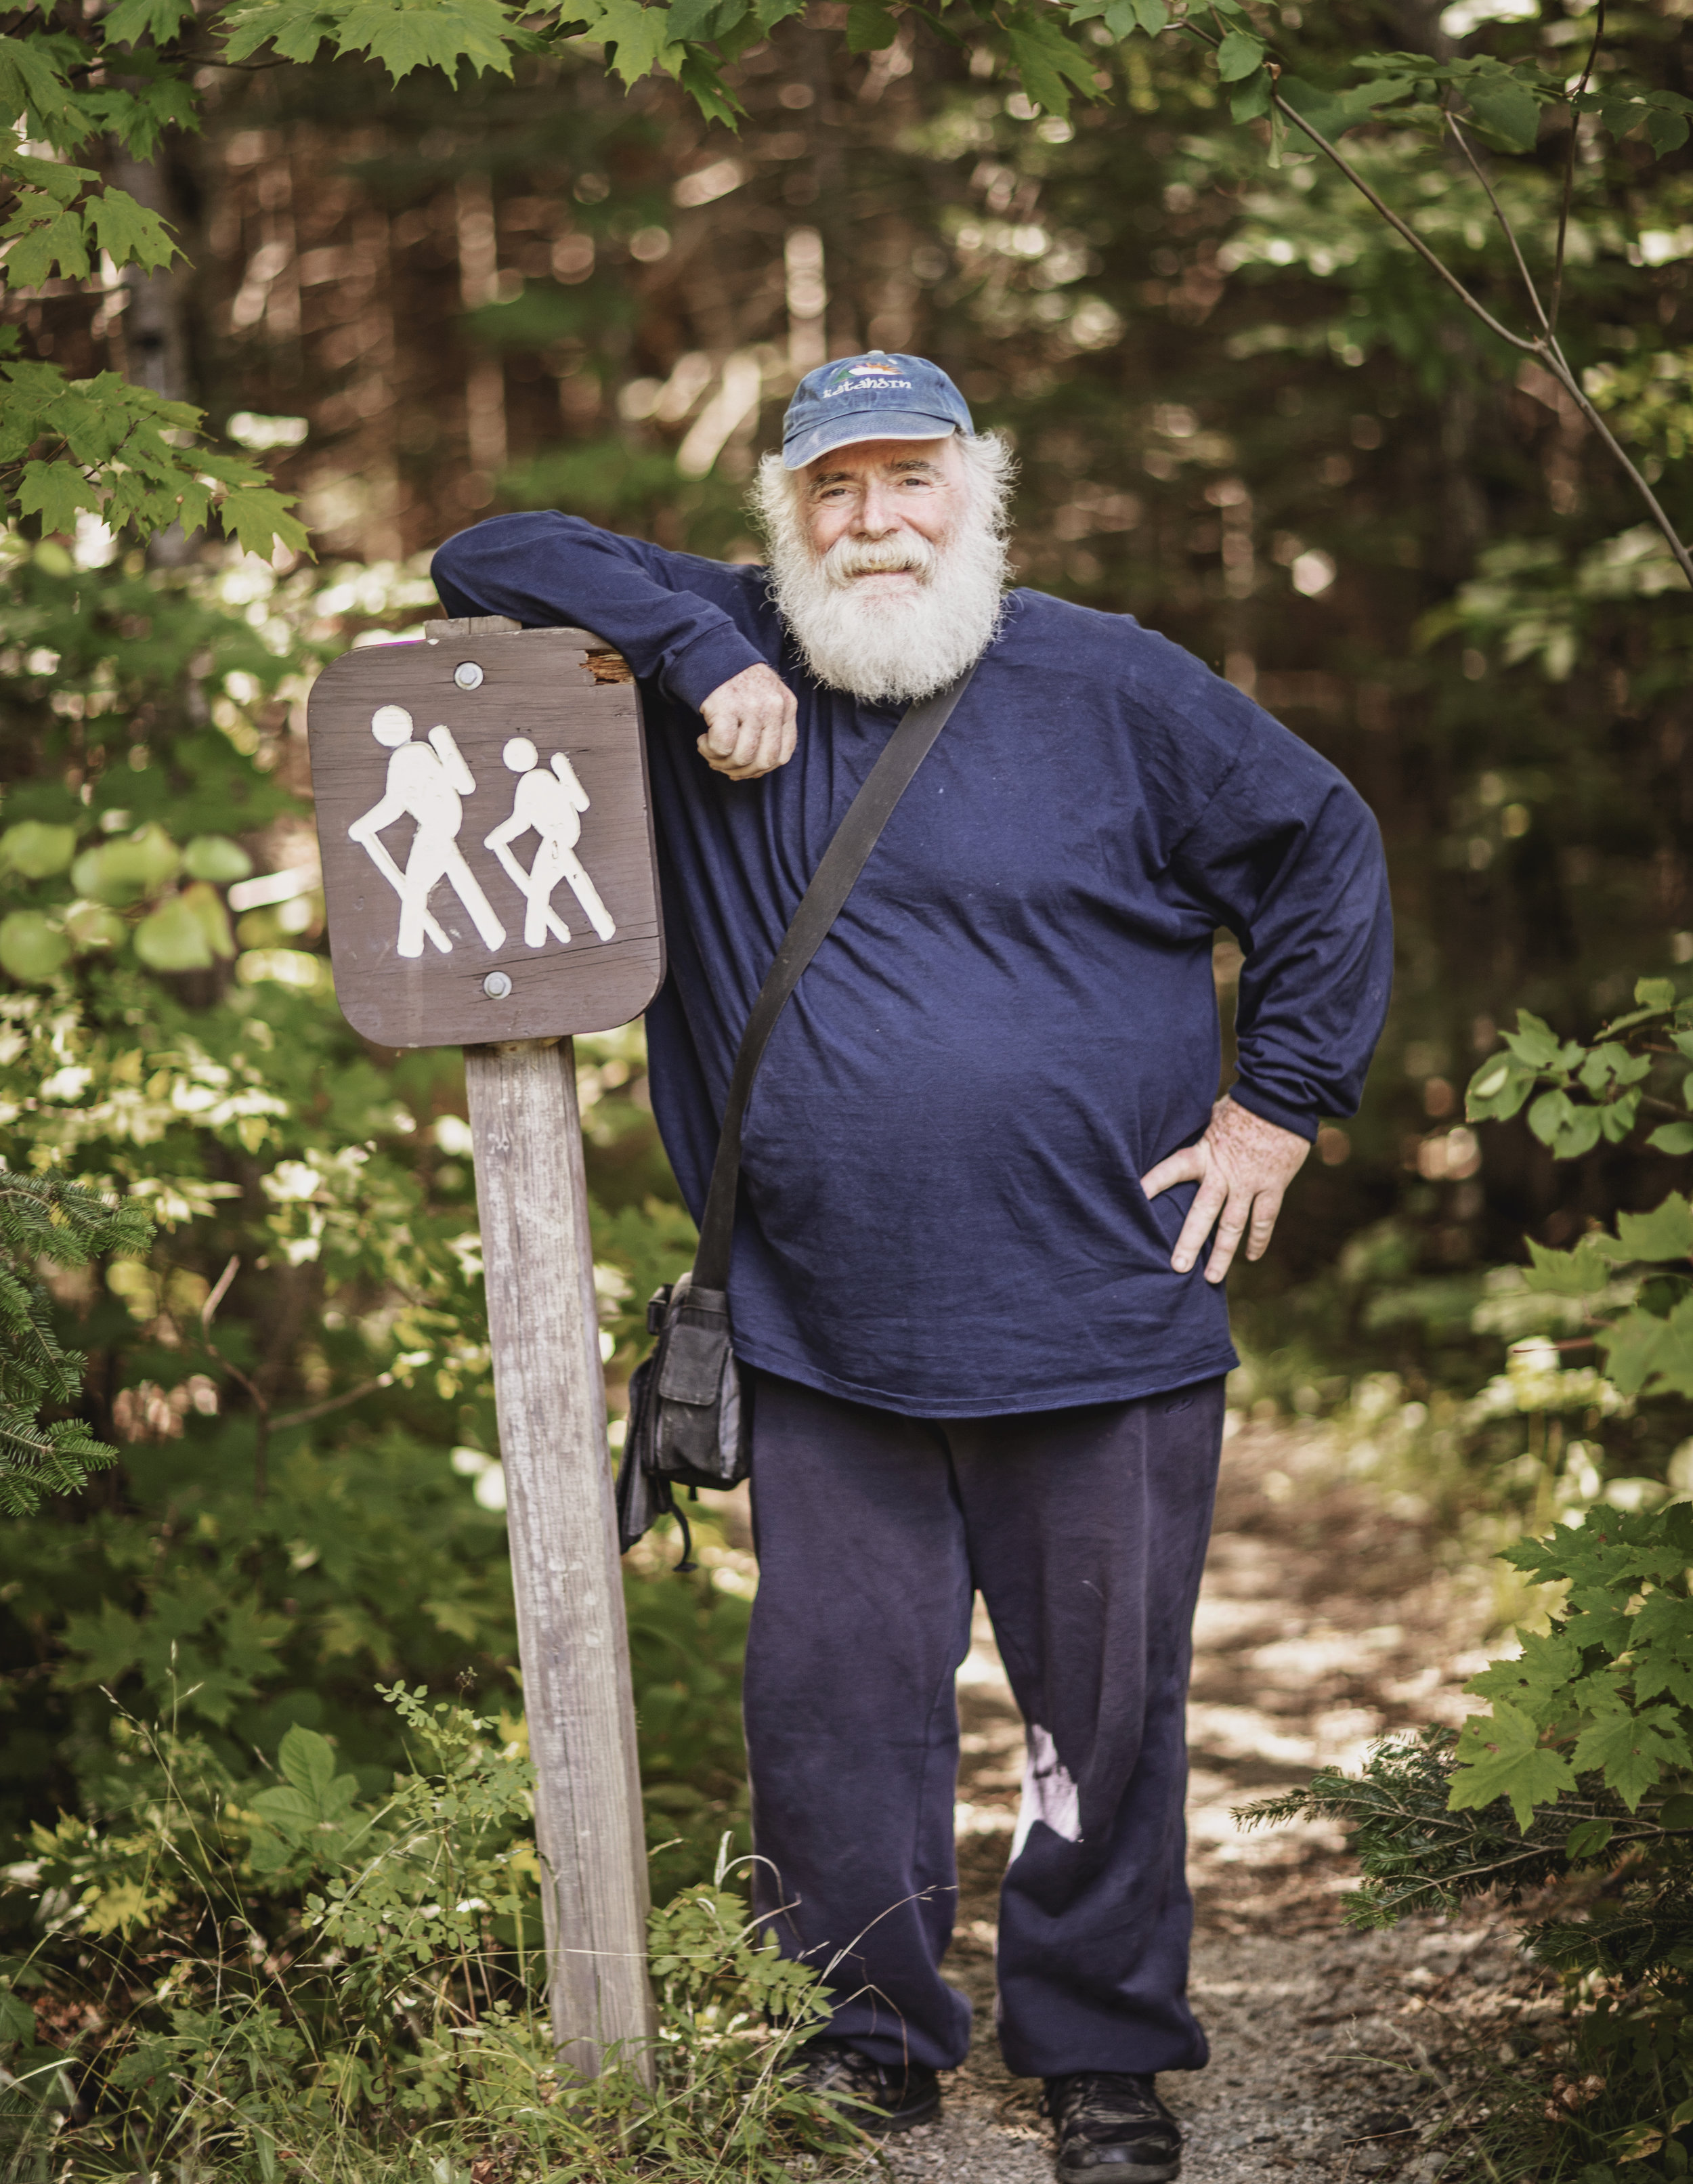 "Warren owns the record with the most number of traverses of the full length of the AT, 18. He also once held the fastest known time on the AT—66 days–in 1973. ""I just completed my 18th traverse of the Appalachian Trail. It was a section hike. I've thru-hiked nine times and section hiked nine times, spanning 45 years. That will be my last traverse. I will not traverse the entire Appalachian Trail again. I'm an educator and all of my educational beliefs and values and ideals come from the trail rather than the classroom. Eight of my nine thru-hikes I organized groups of people and we hiked the trail together as a group to help facilitate people's dreams. I strongly believe that a country's strength is not in its military might but the amount of people in that country's society that have fulfilled their dreams. Helping these people along the trail is my way of serving my country. The trail is apolitical, it's nondiscriminatory. It's one way for a person to be free in an unfree society."""